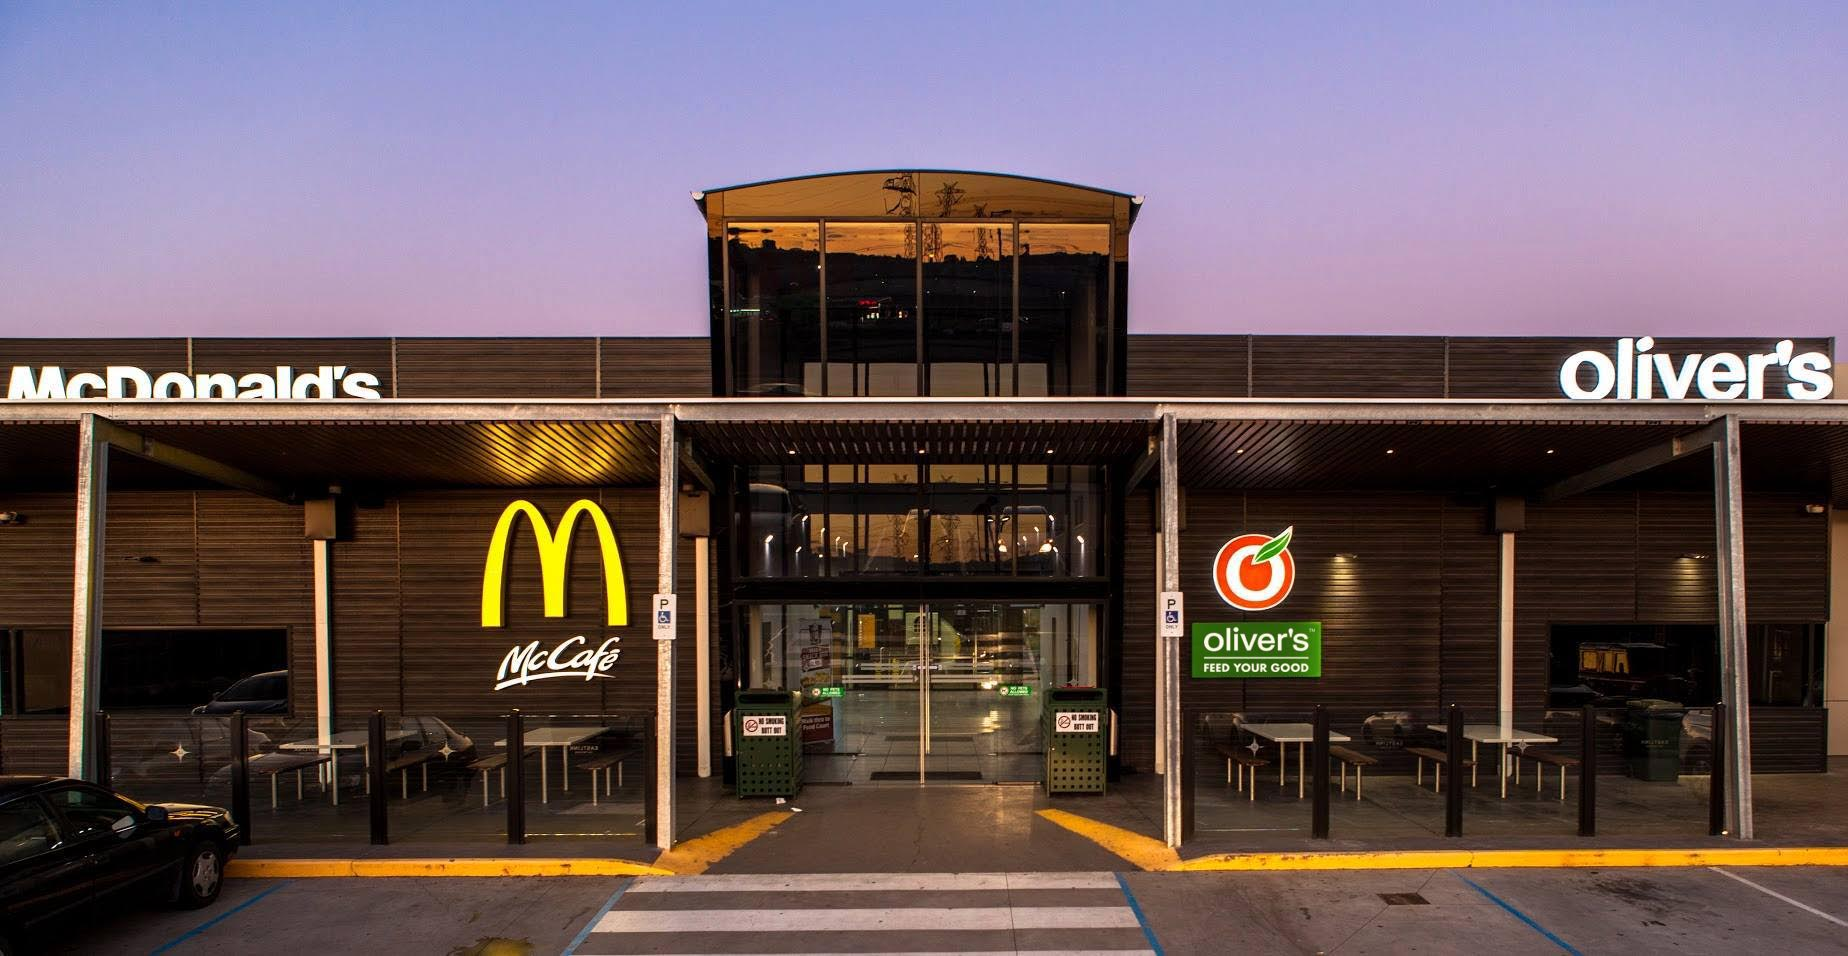 Oliver's next to McDonald's